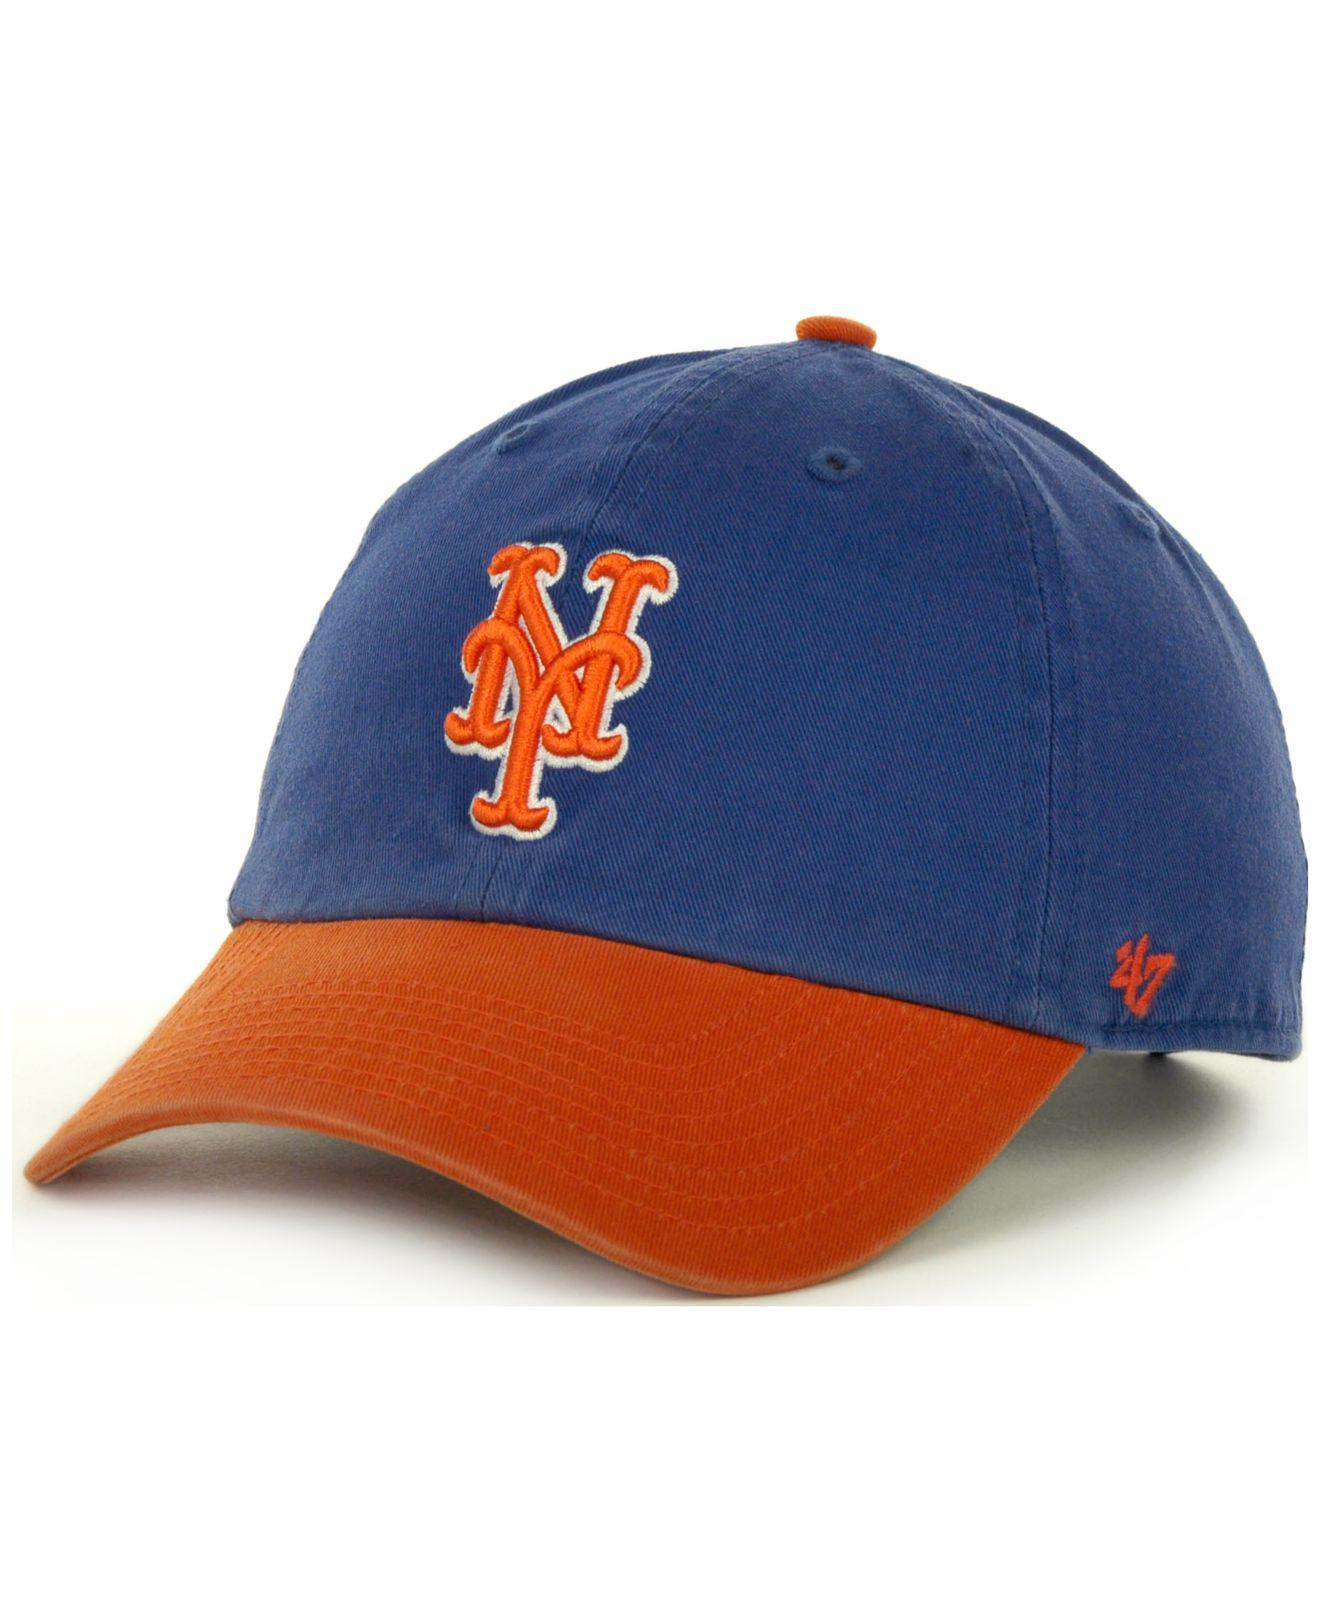 5416b54339afe 47 Brand New York Mets Clean Up Hat in Orange for Men - Lyst